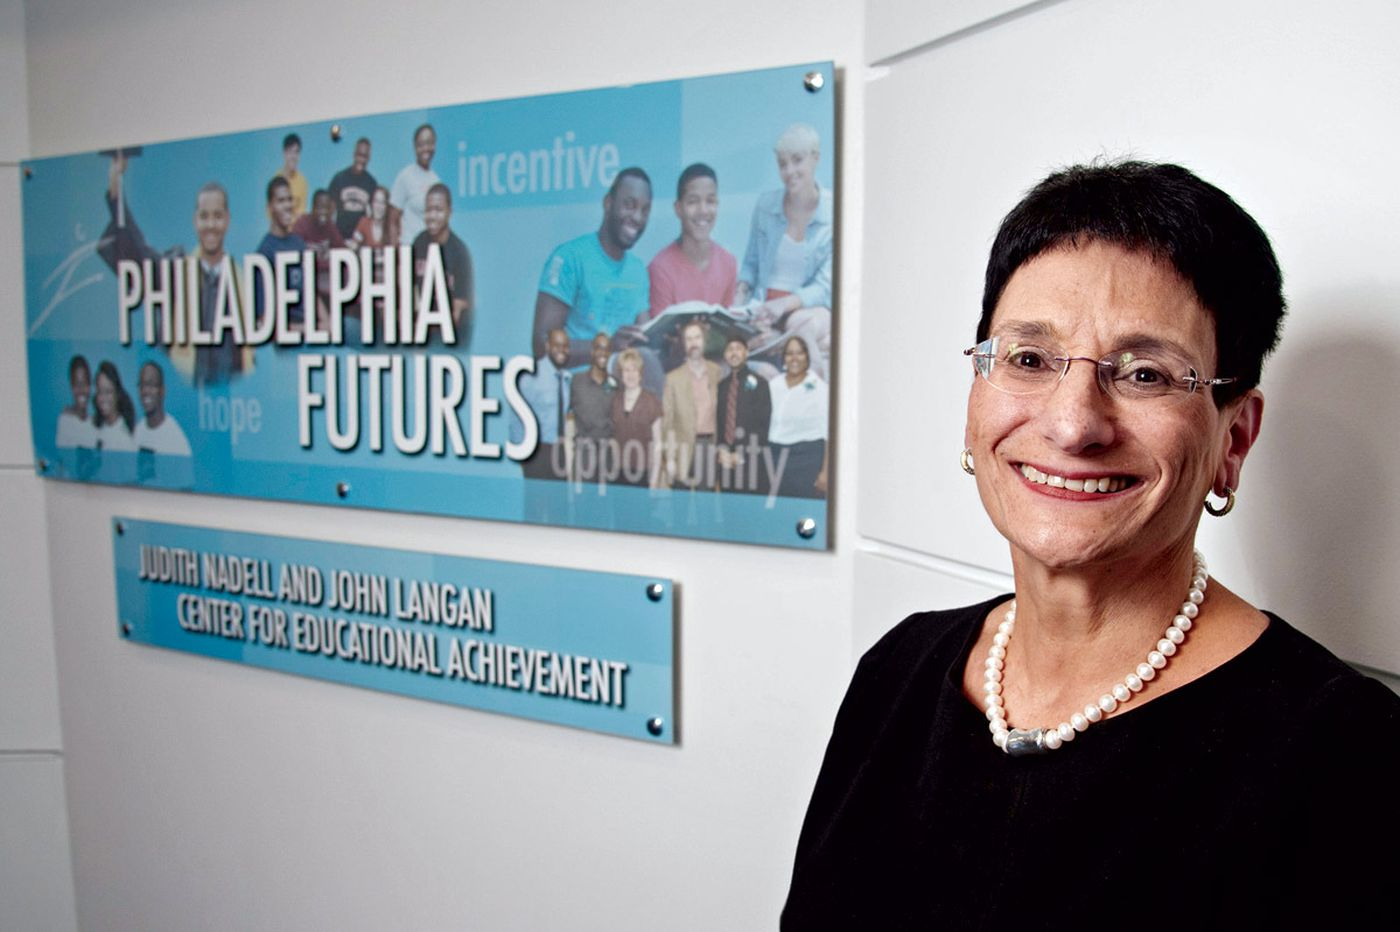 Philadelphia Futures' head stepping down after 16 years and 500-plus college graduates